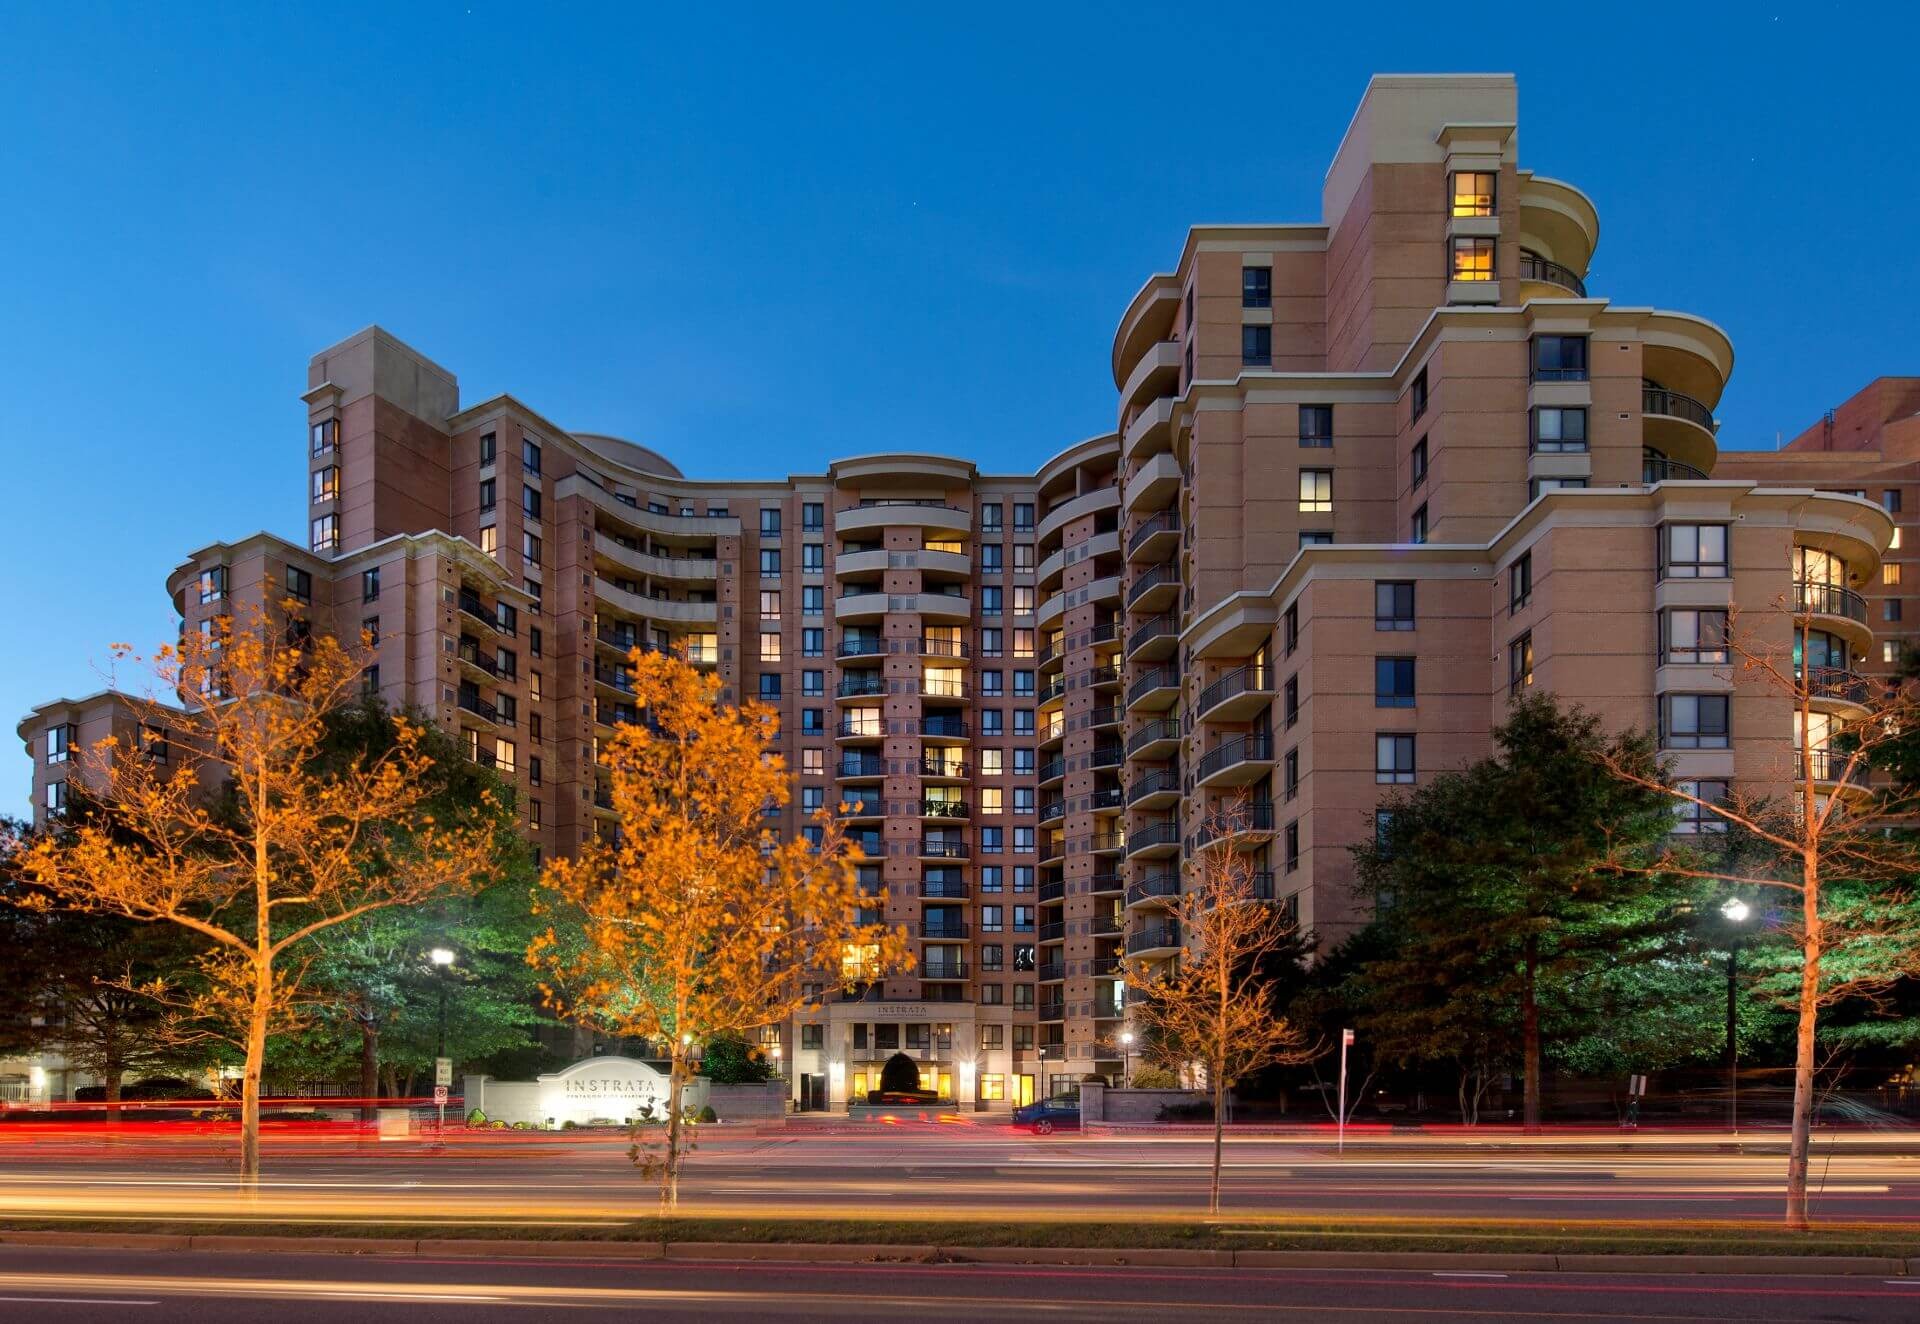 Welcome home to Instrata Pentagon City.